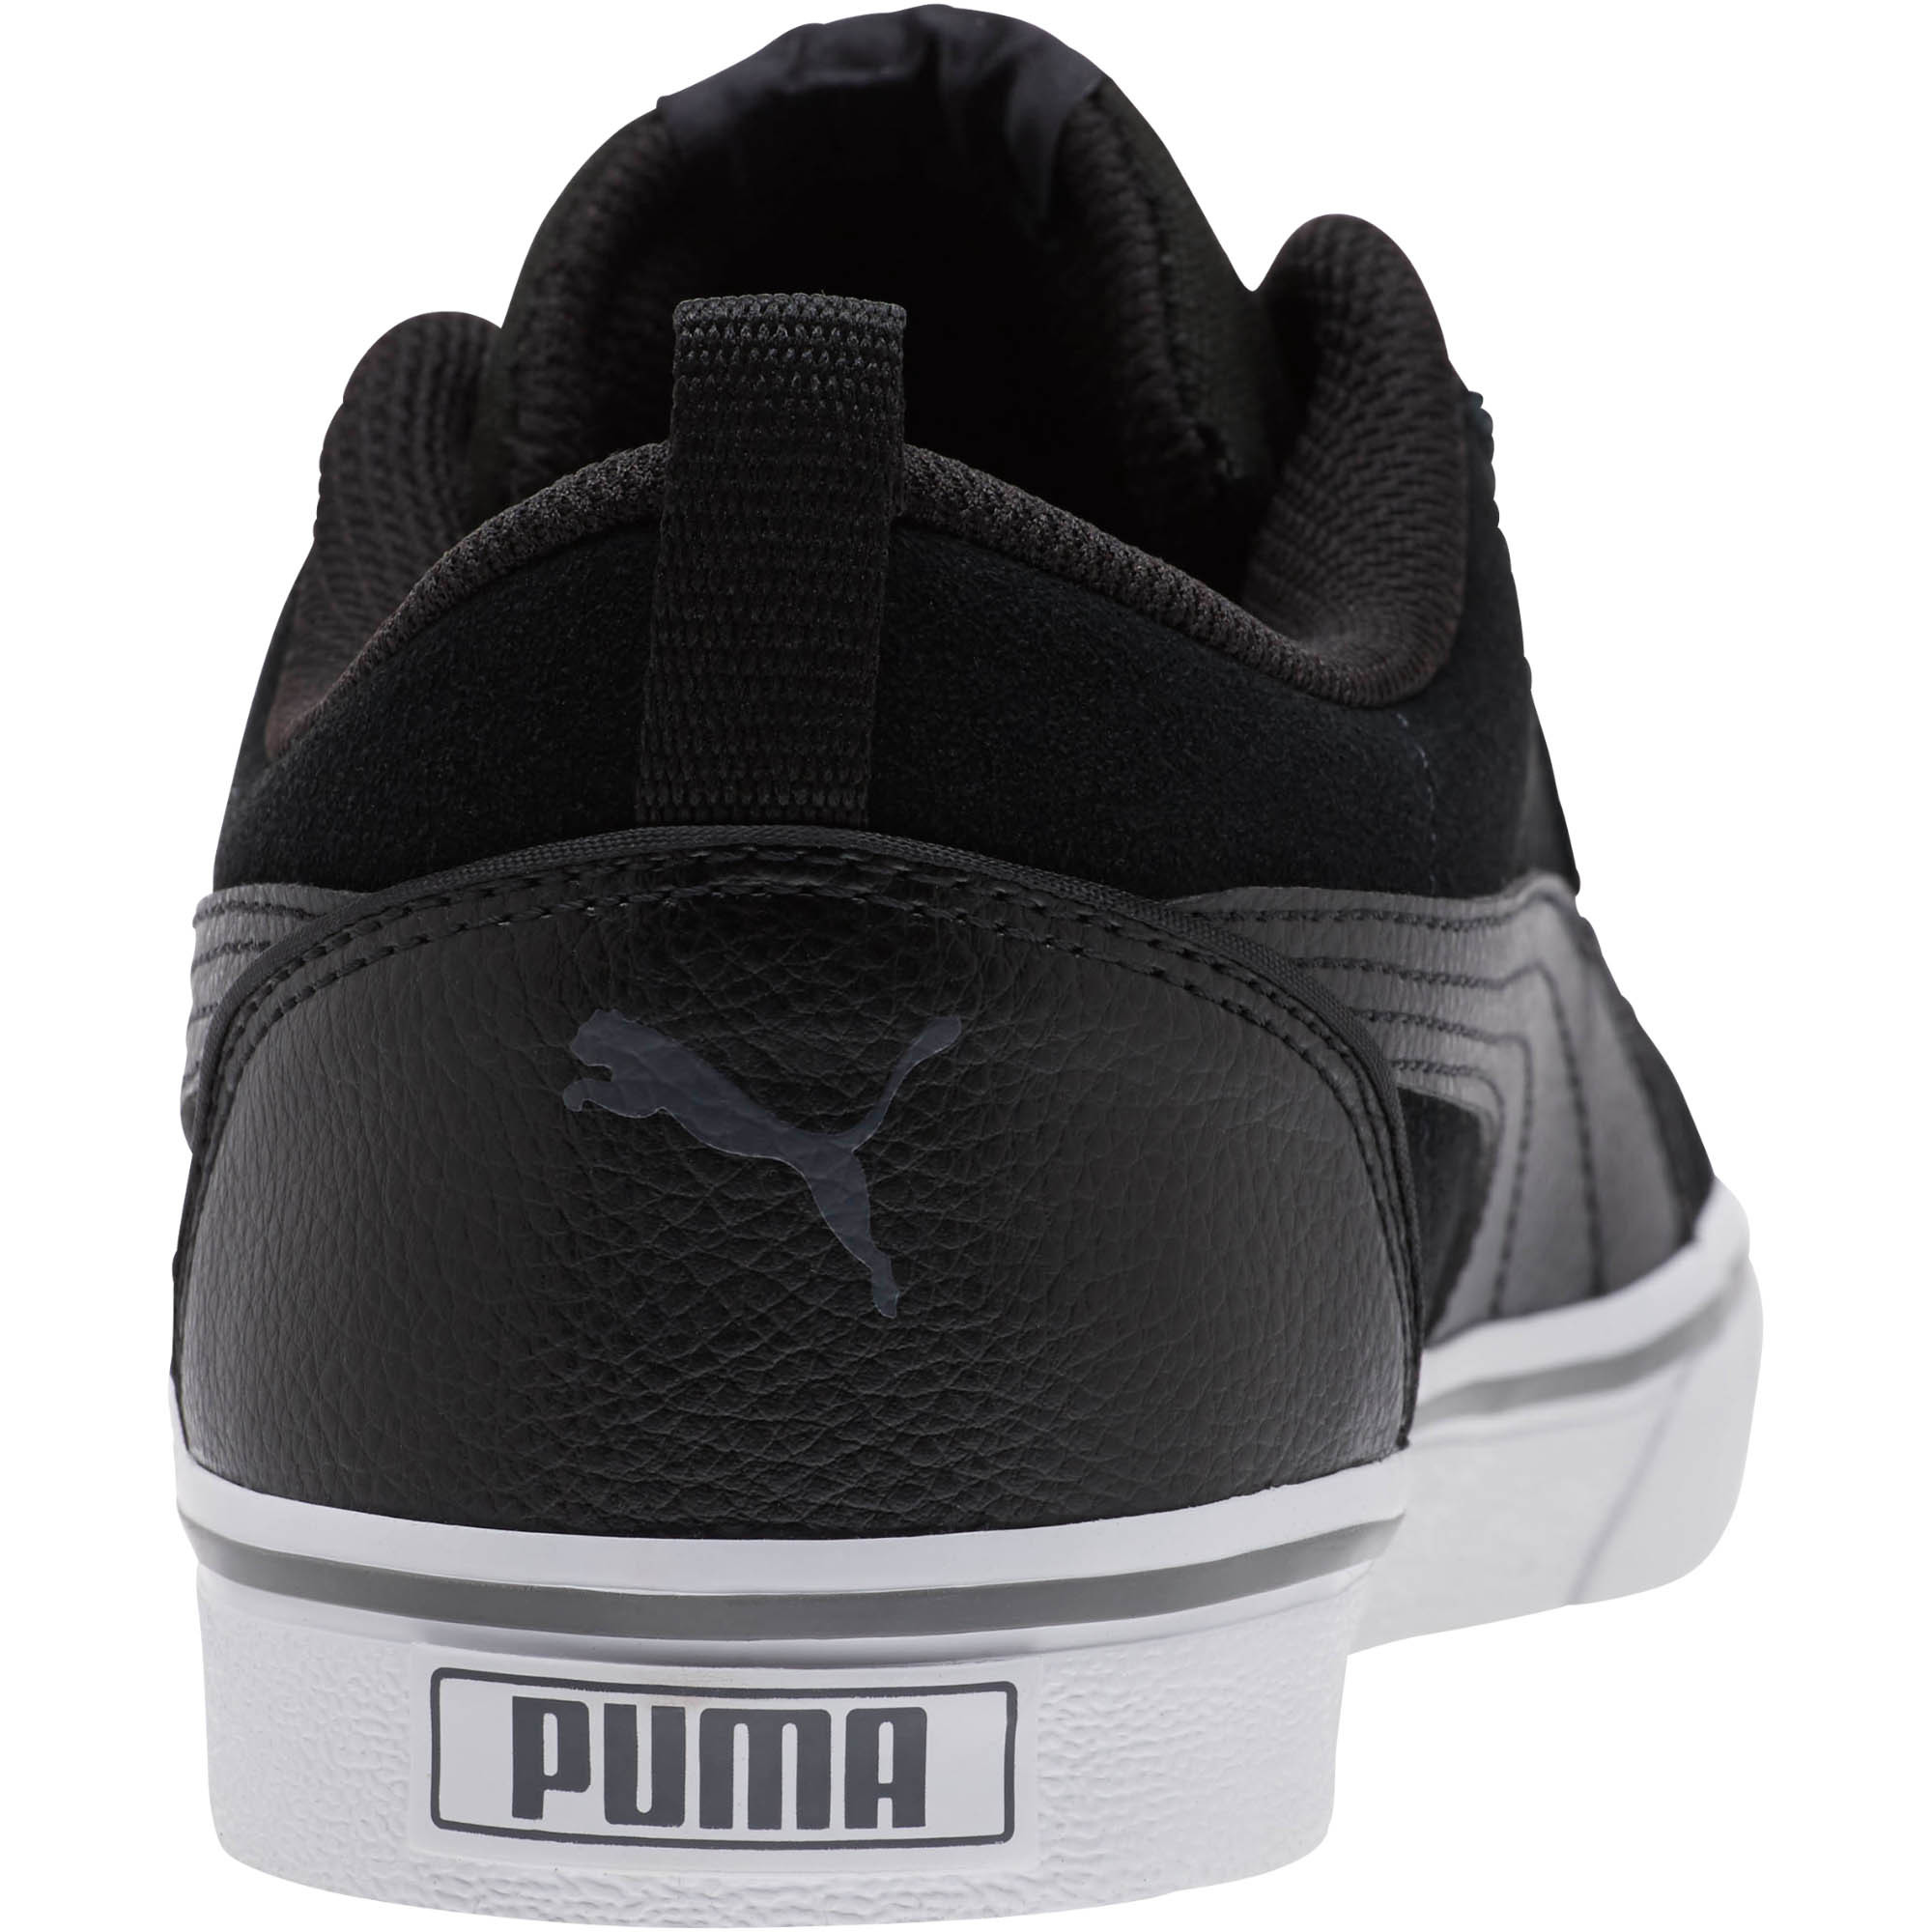 PUMA-Puma-Bridger-SD-Men-039-s-Sneakers-Men-Shoe-Basics thumbnail 8